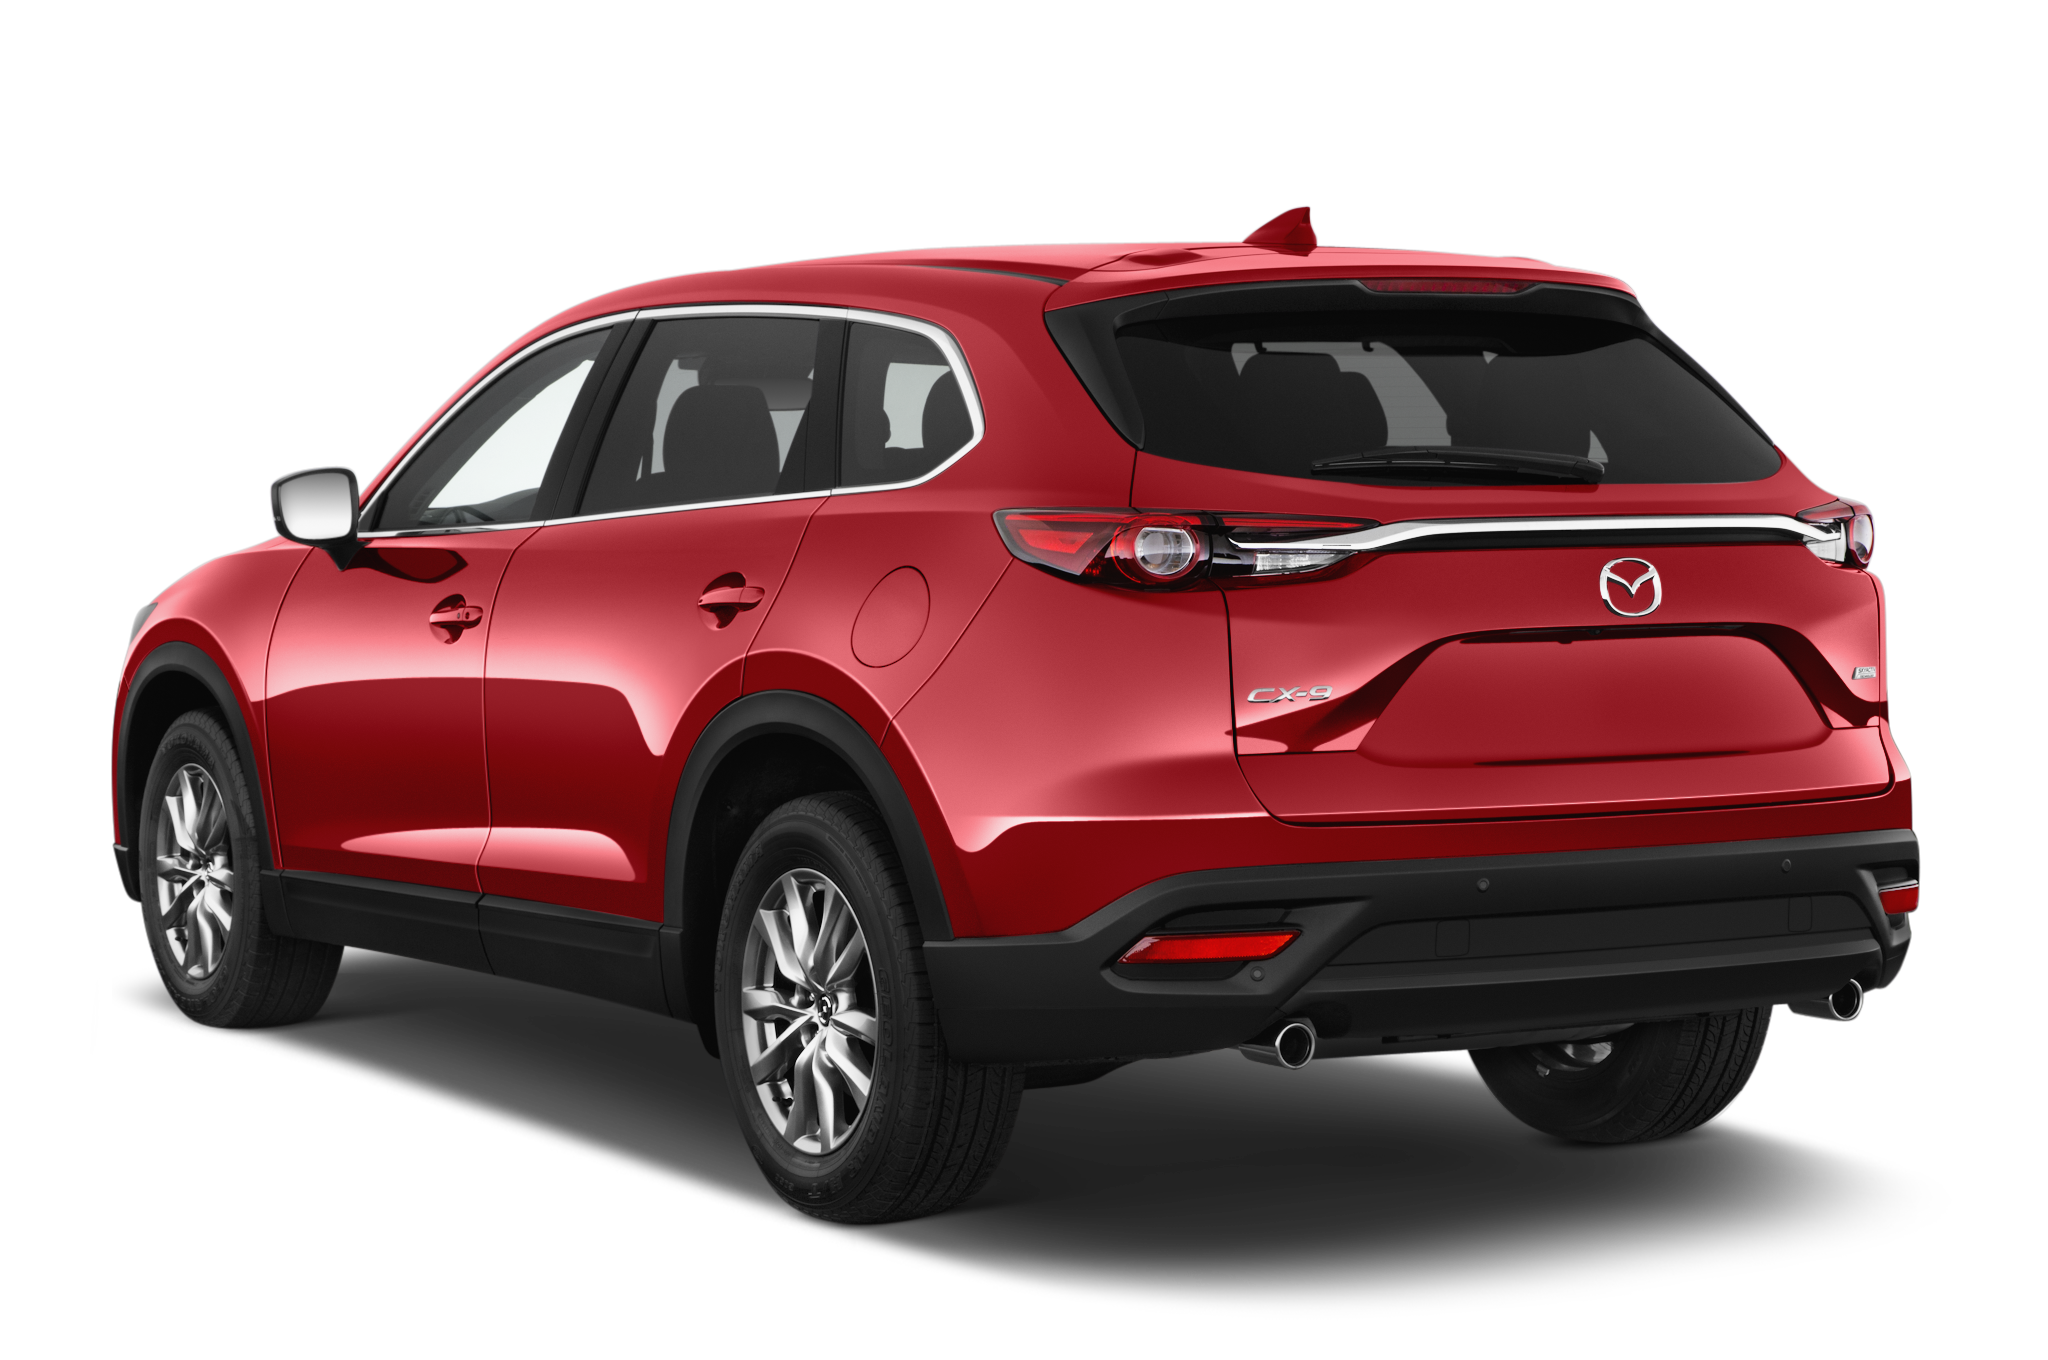 2016 mazda cx 9 touring fwd suv angular rear. Black Bedroom Furniture Sets. Home Design Ideas